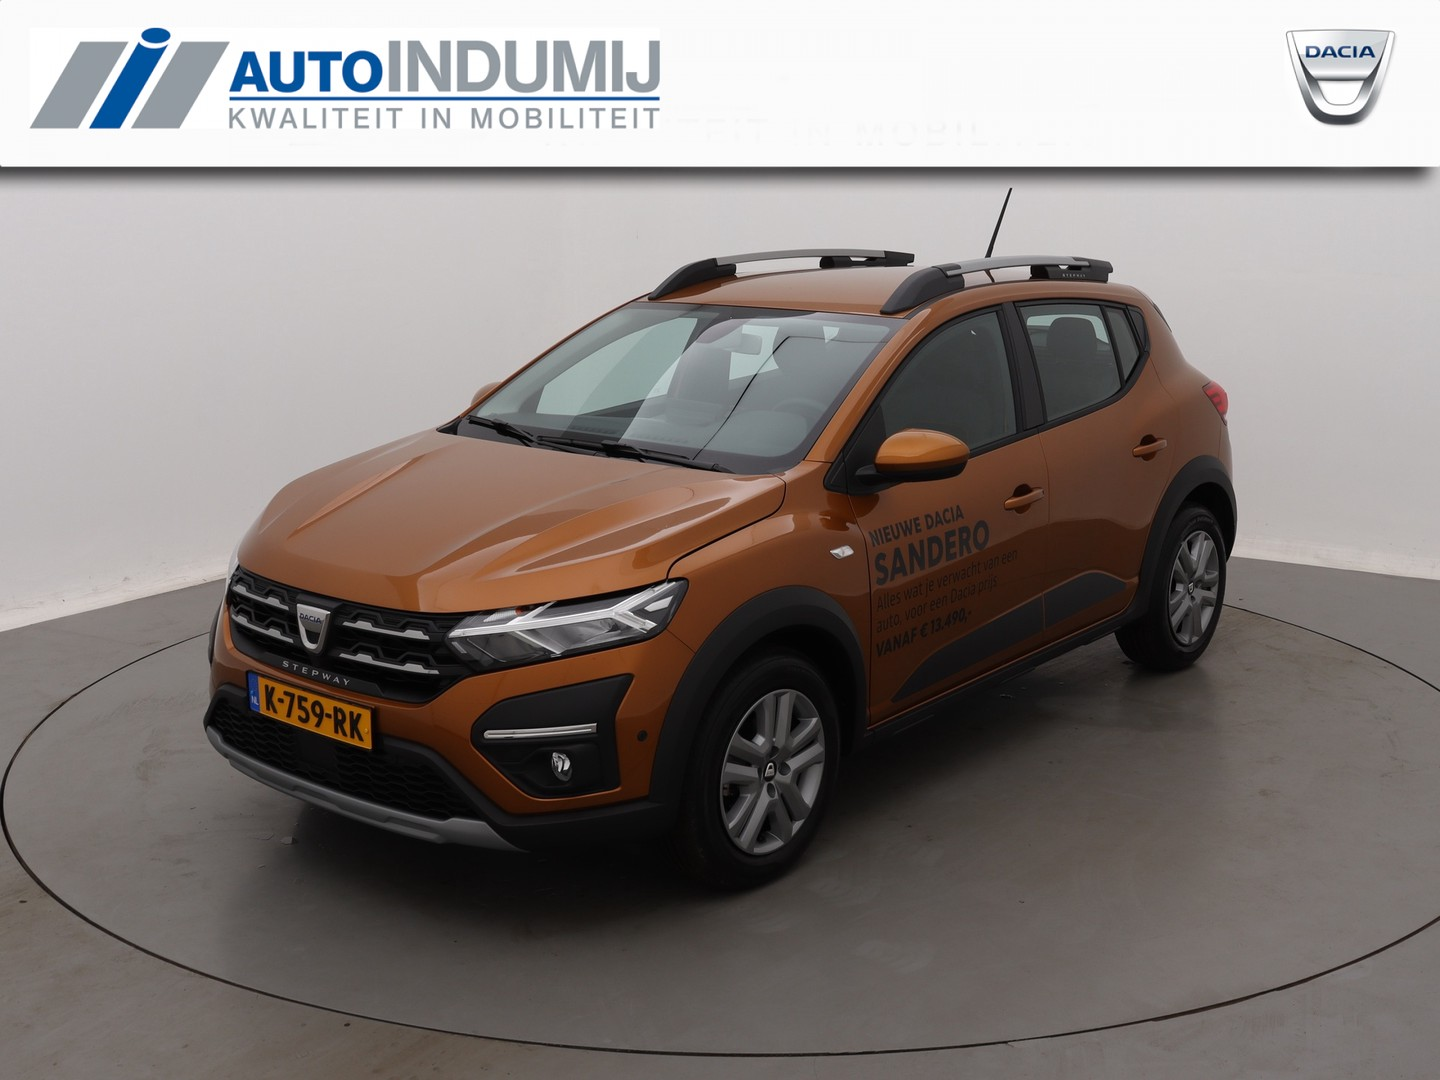 Dacia Sandero Tce 90 stepway comfort / pack assist / media nav europa